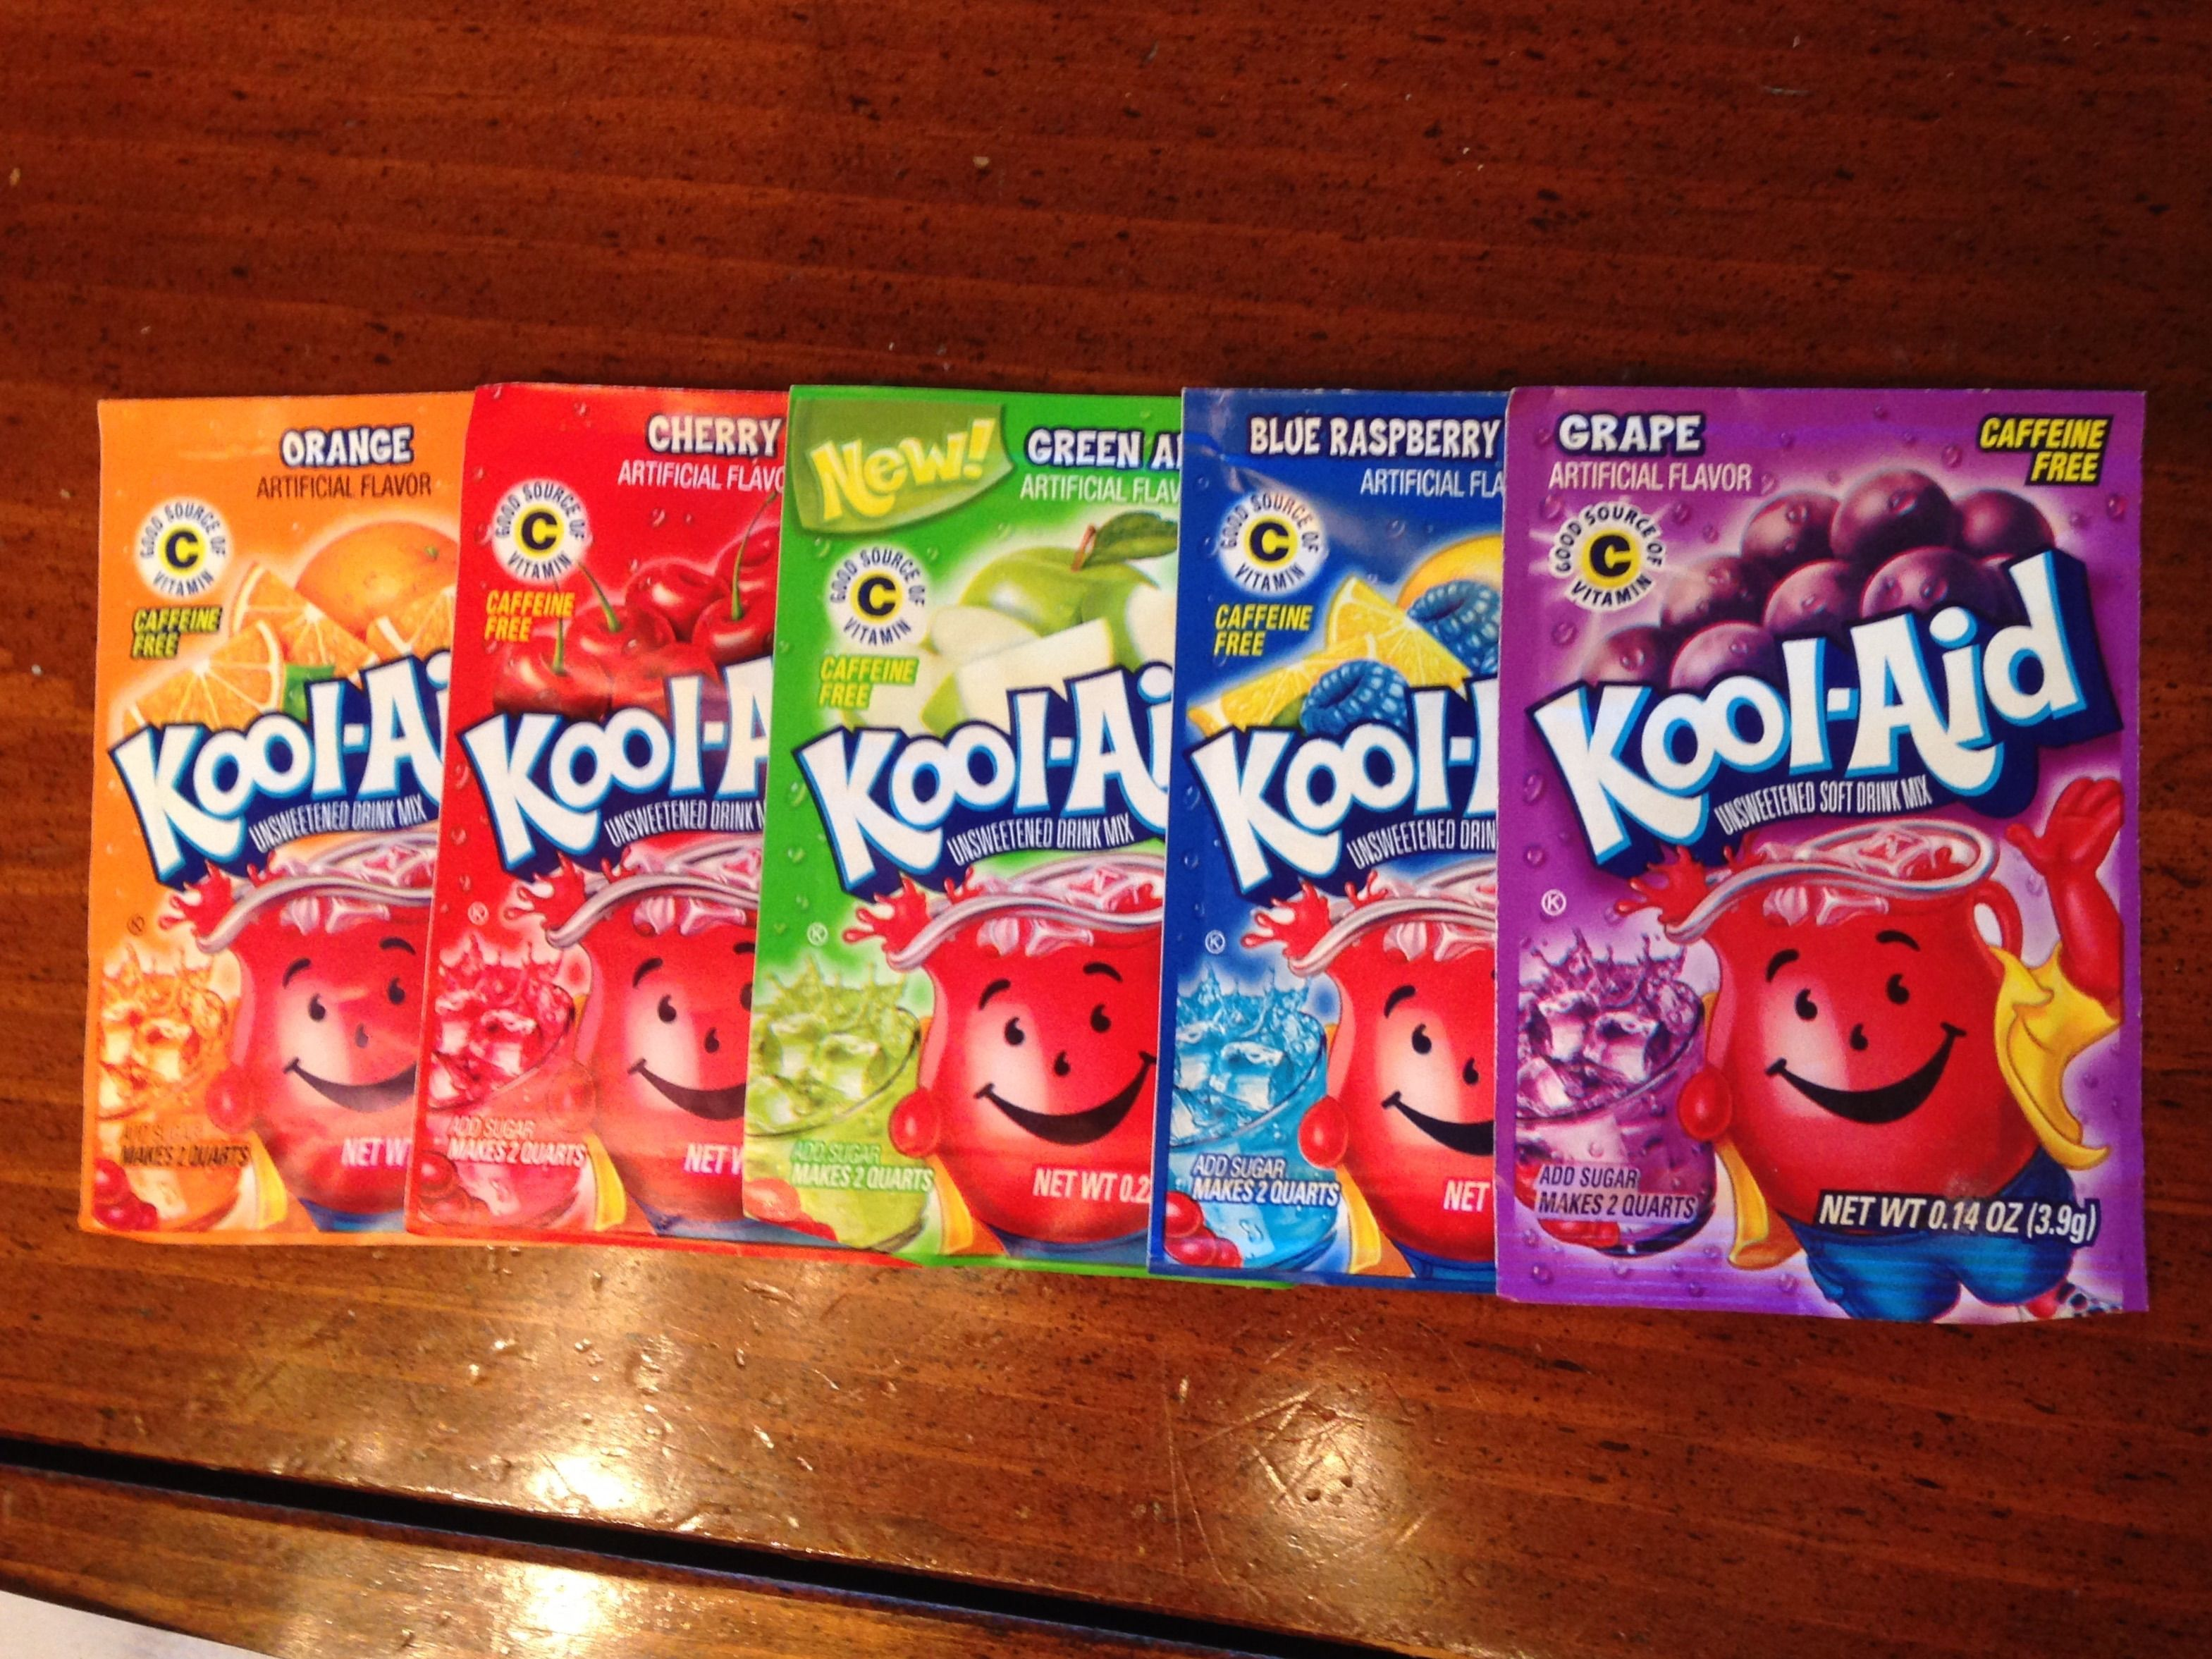 How To Dye Easter Eggs With Kool Aid Lessons For Little Ones By Tina O Block Kool Aid Kool Aid Packets Coloring Easter Eggs